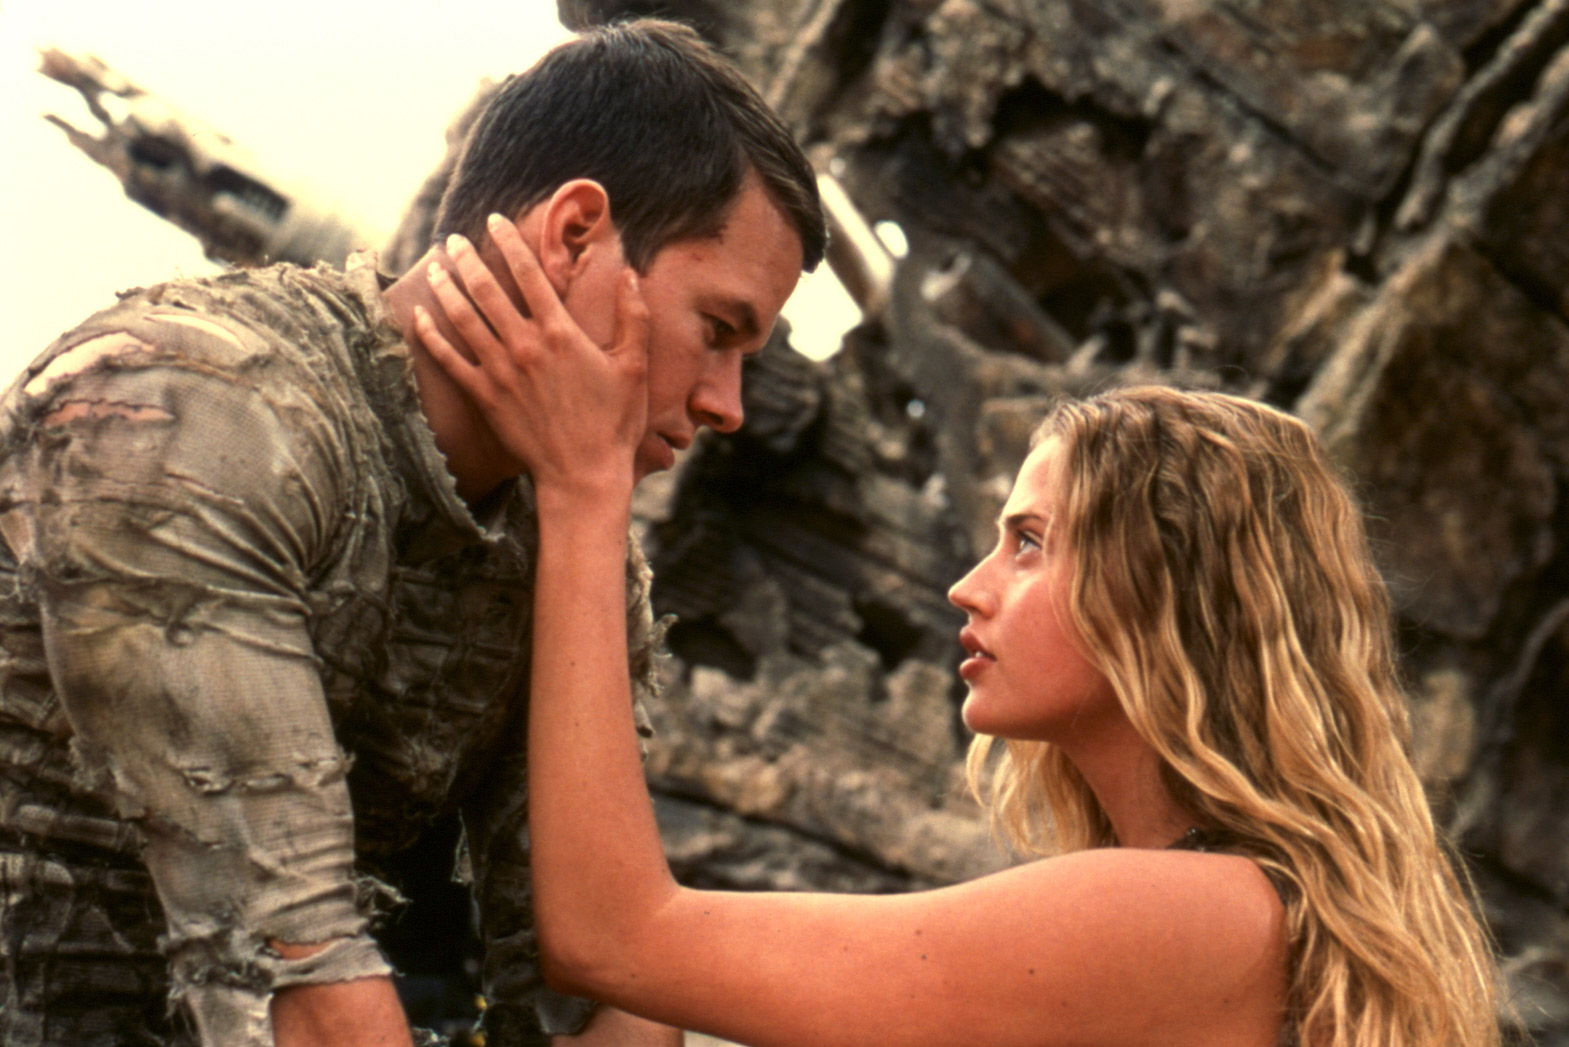 Astronaut Mark Wahlberg and Daena (Estella Warren) stranded on Planet of the Apes (2001)